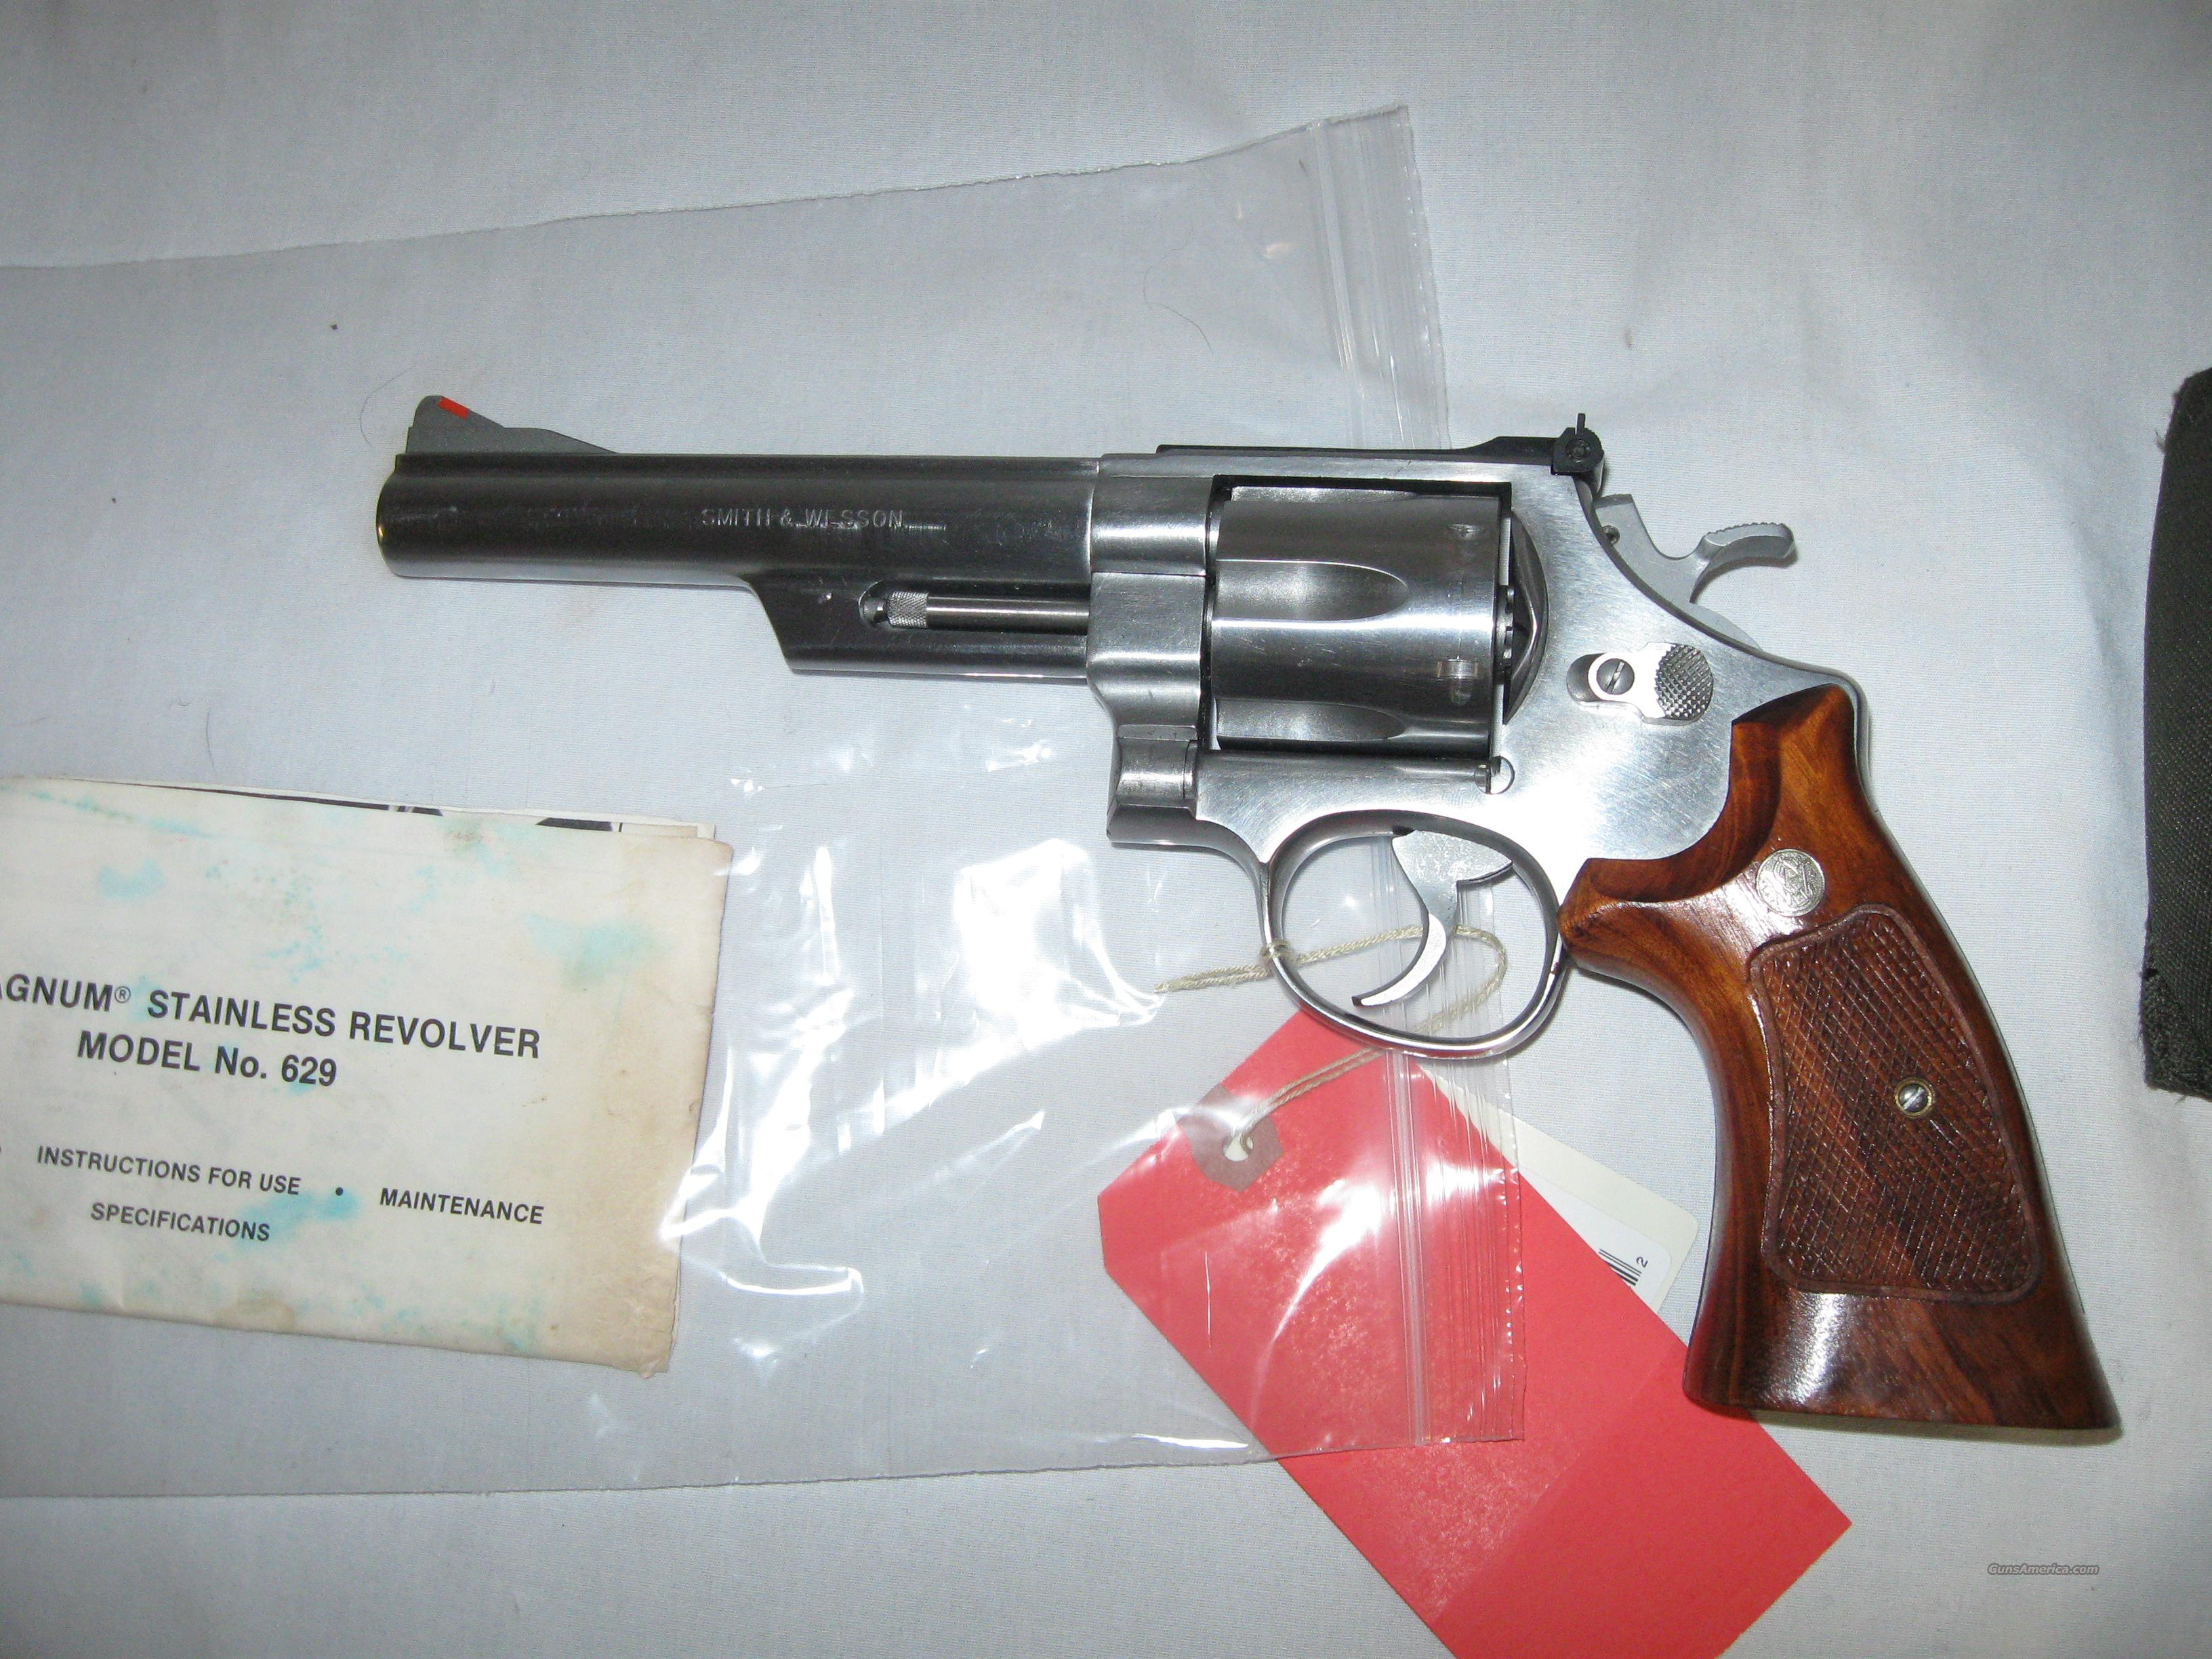 Smih&Wesson Model 629-1 in  44Mag  Guns > Pistols > Smith & Wesson Revolvers > Model 629